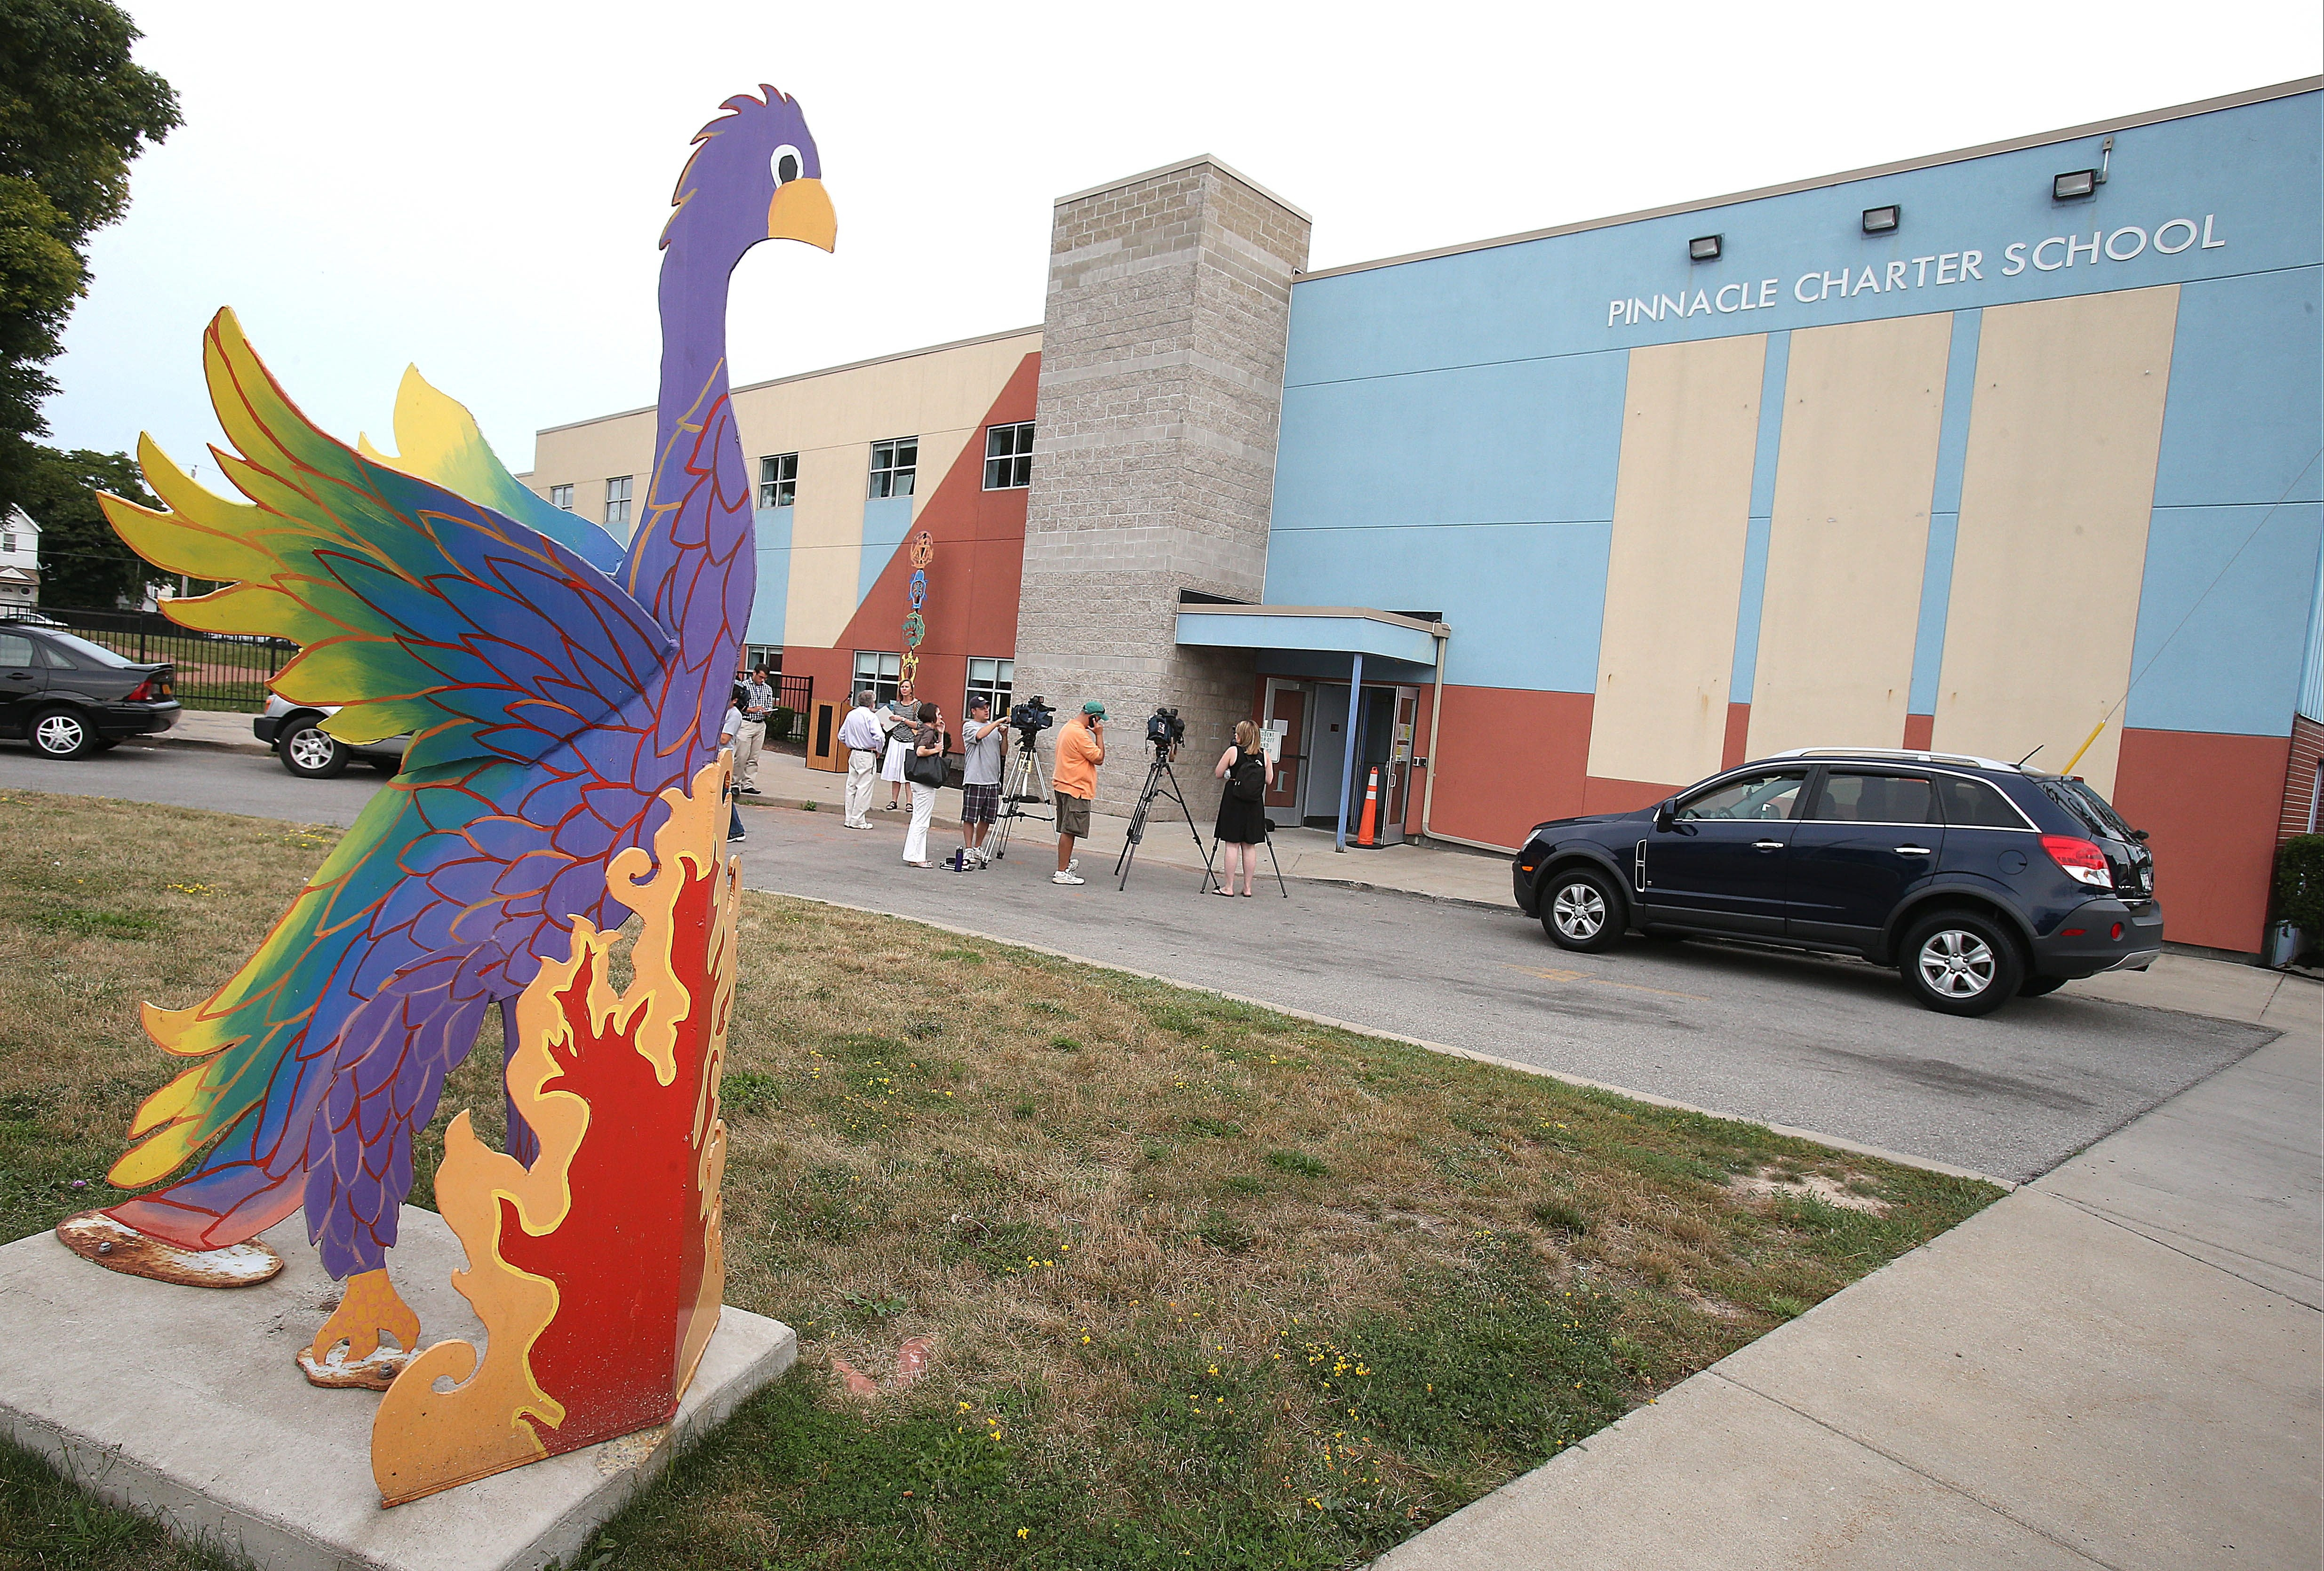 The Buffalo School District has no plan to accommodate students at Pinnacle Charter School, which is being closed by the state. (Robert Kirkham/Buffalo News file photo)